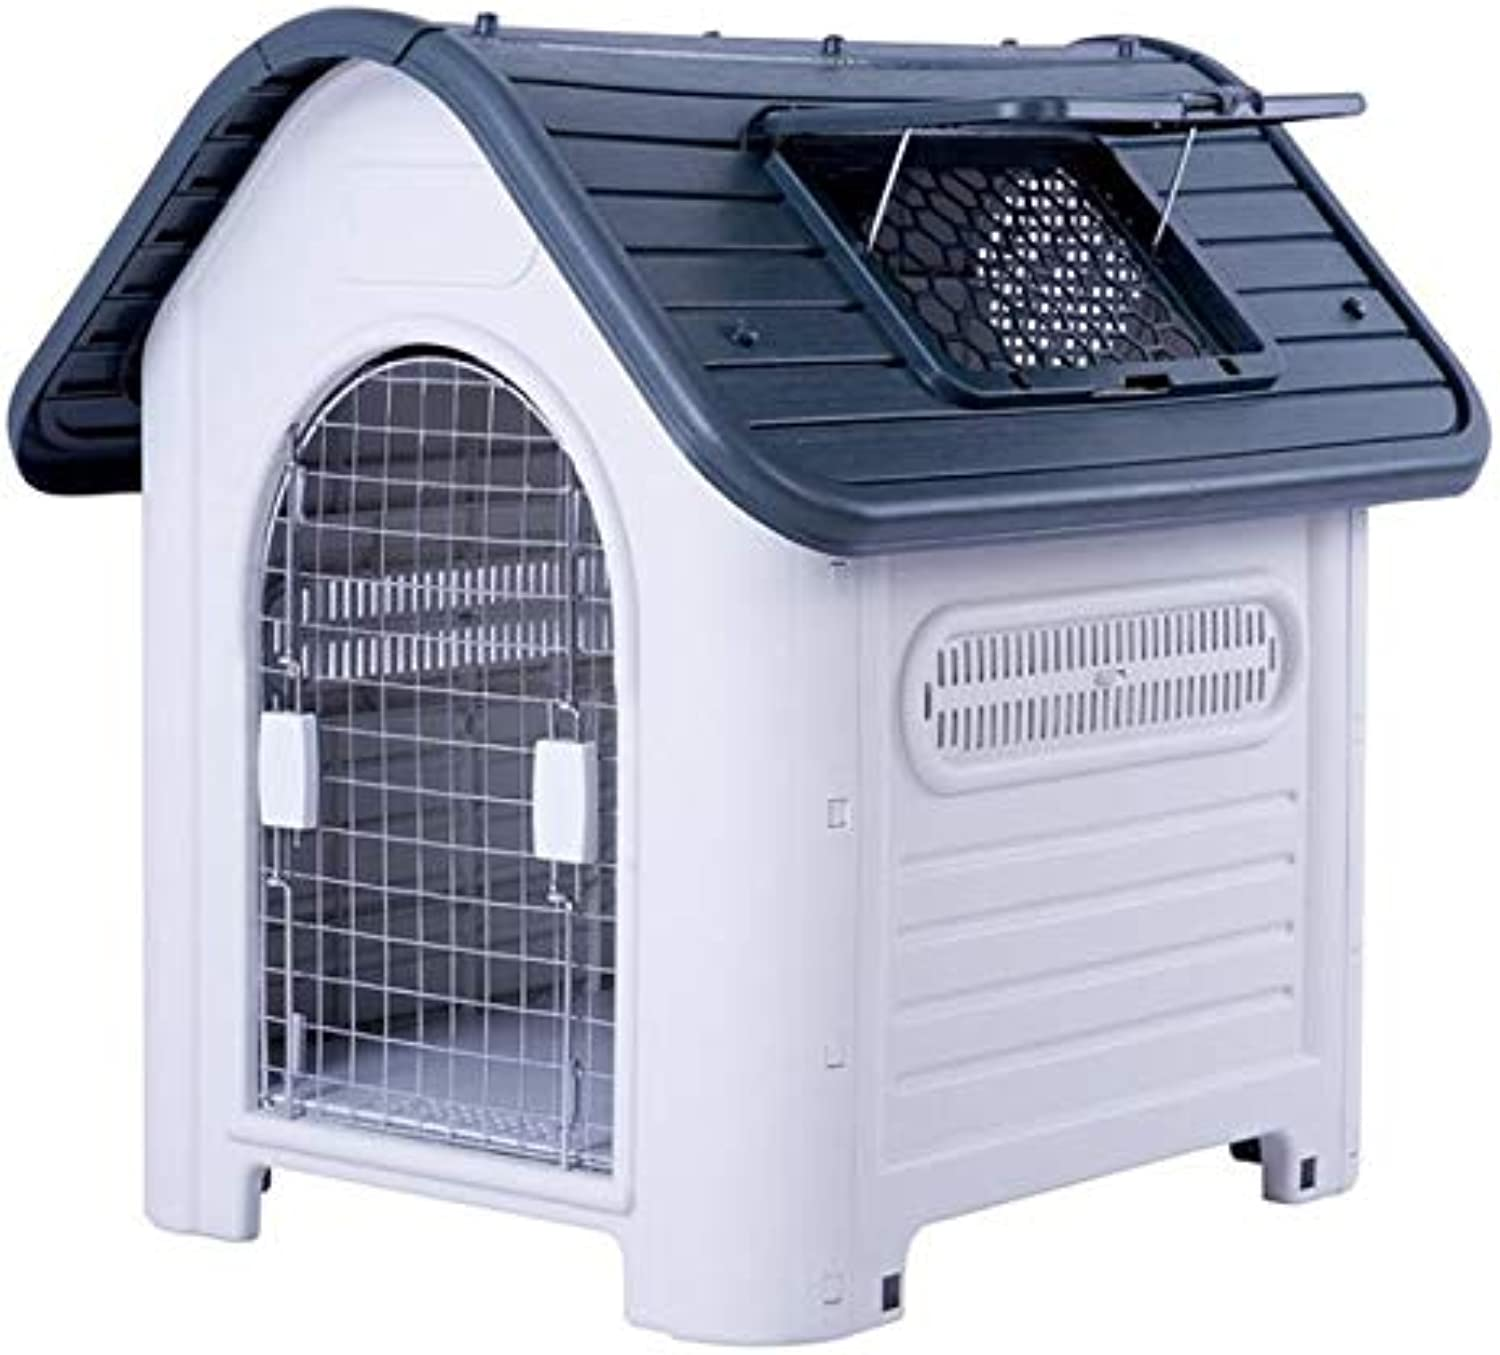 CARBE kennelOutdoor Four Seasons Universal Dog House Removable Dog House Small And Medium Sized Dog House Outdoor Weatherproof Kennel